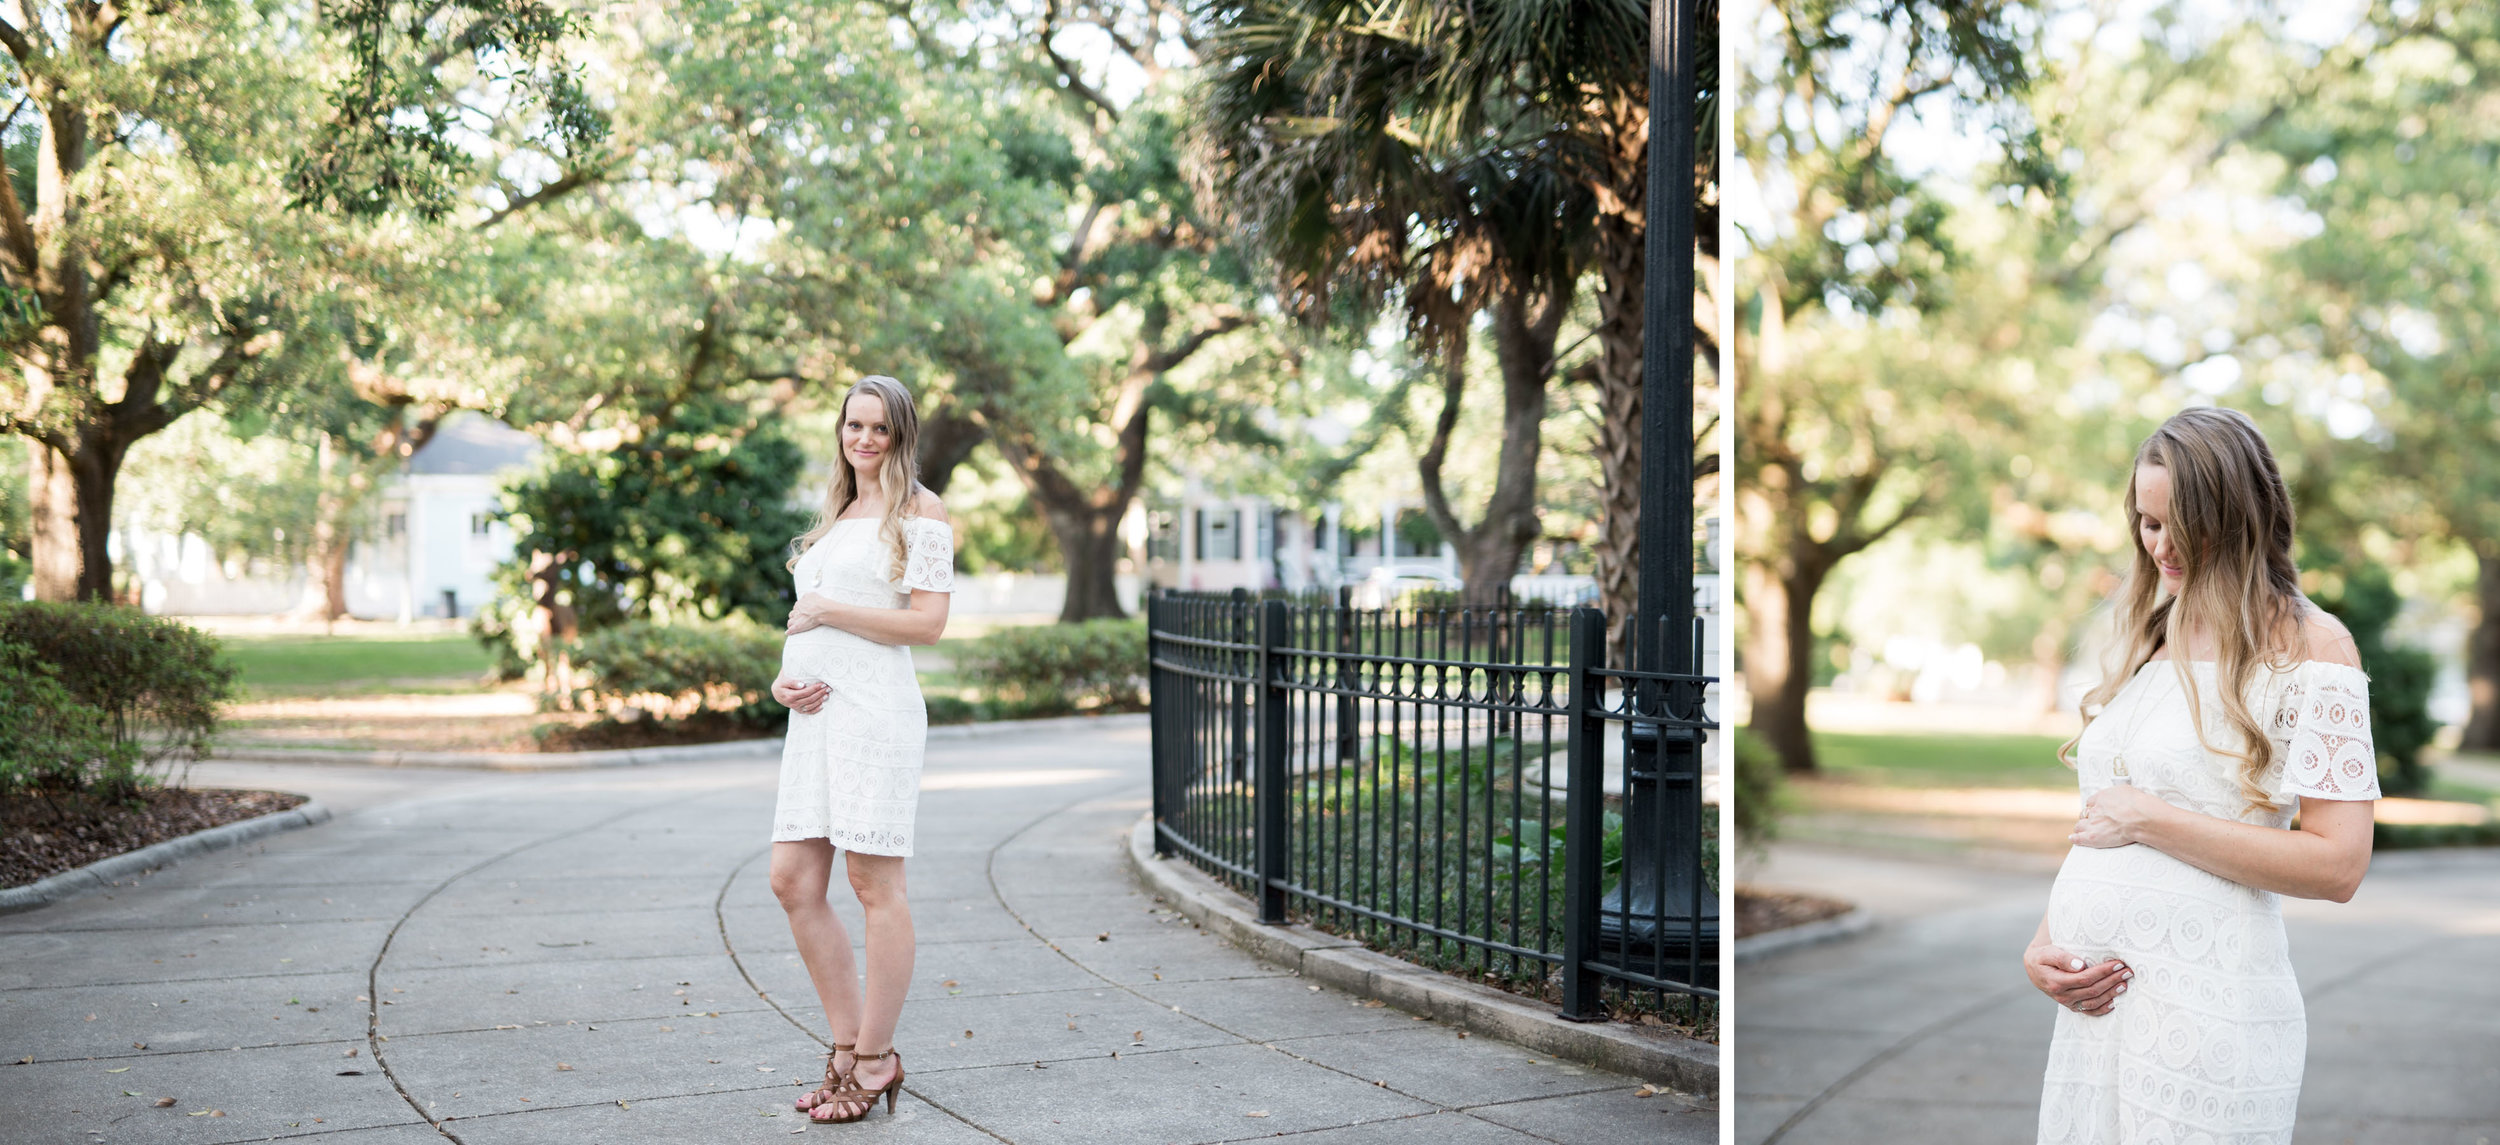 Downtown Mobile Alabama Family Portraits in Washington Square by Kristen Grubb Photography